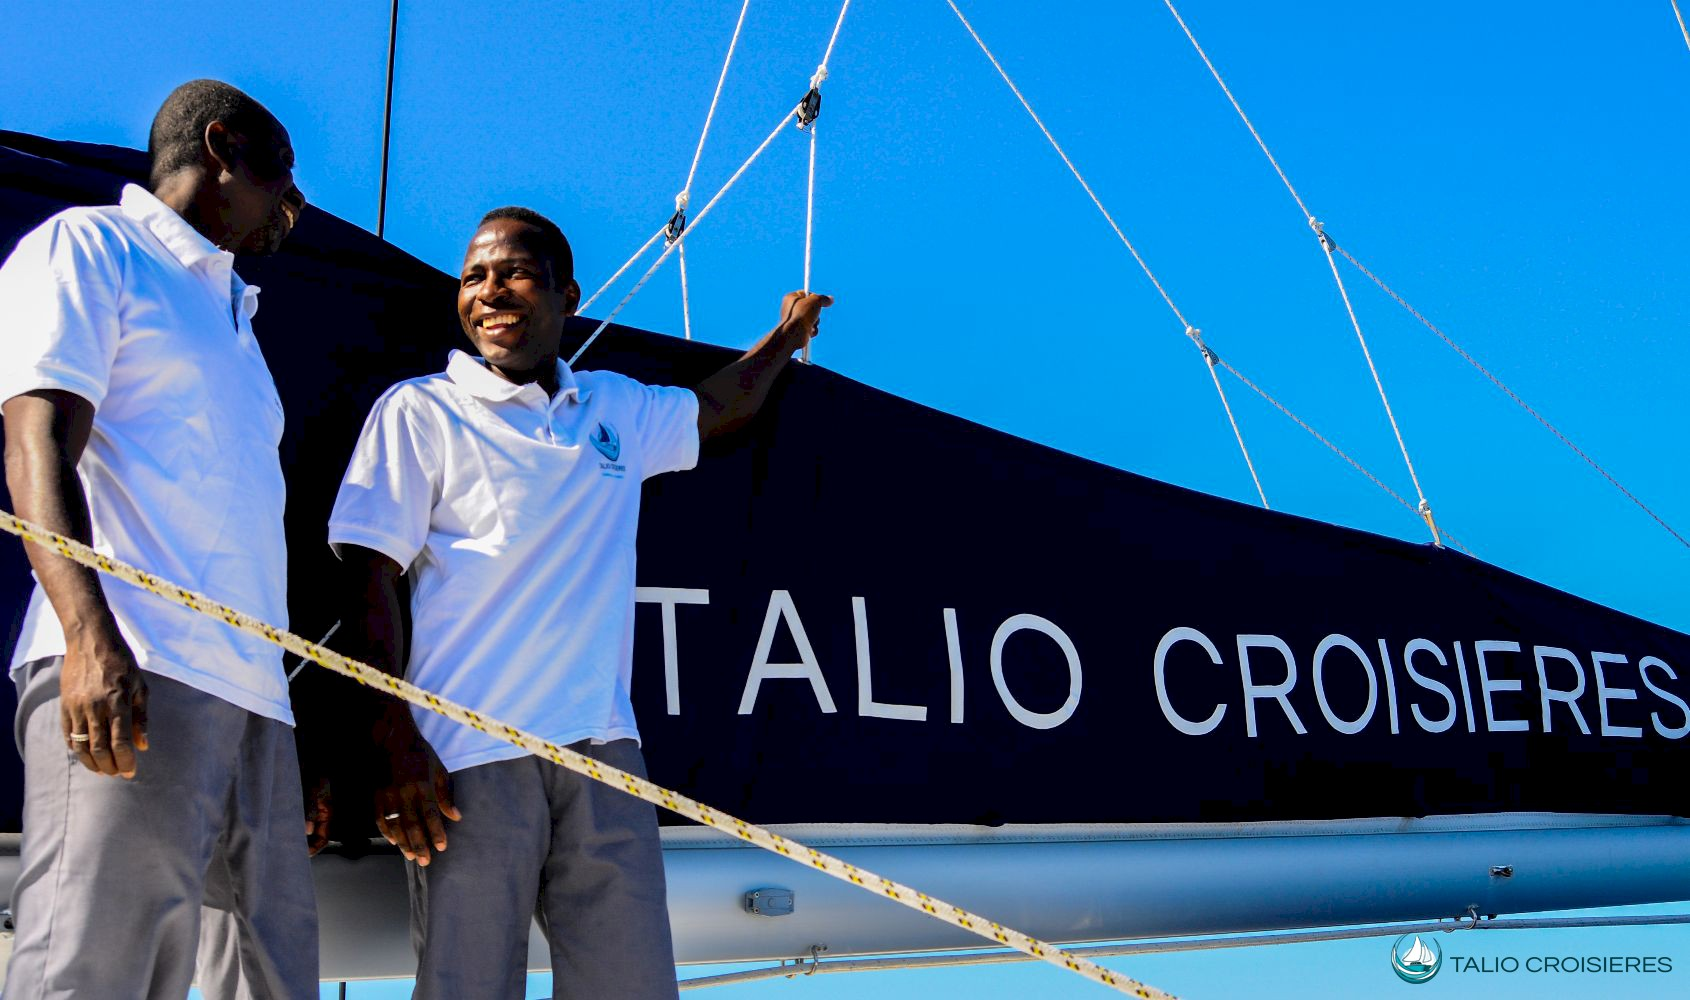 talio-croisiere-equipage.JPG